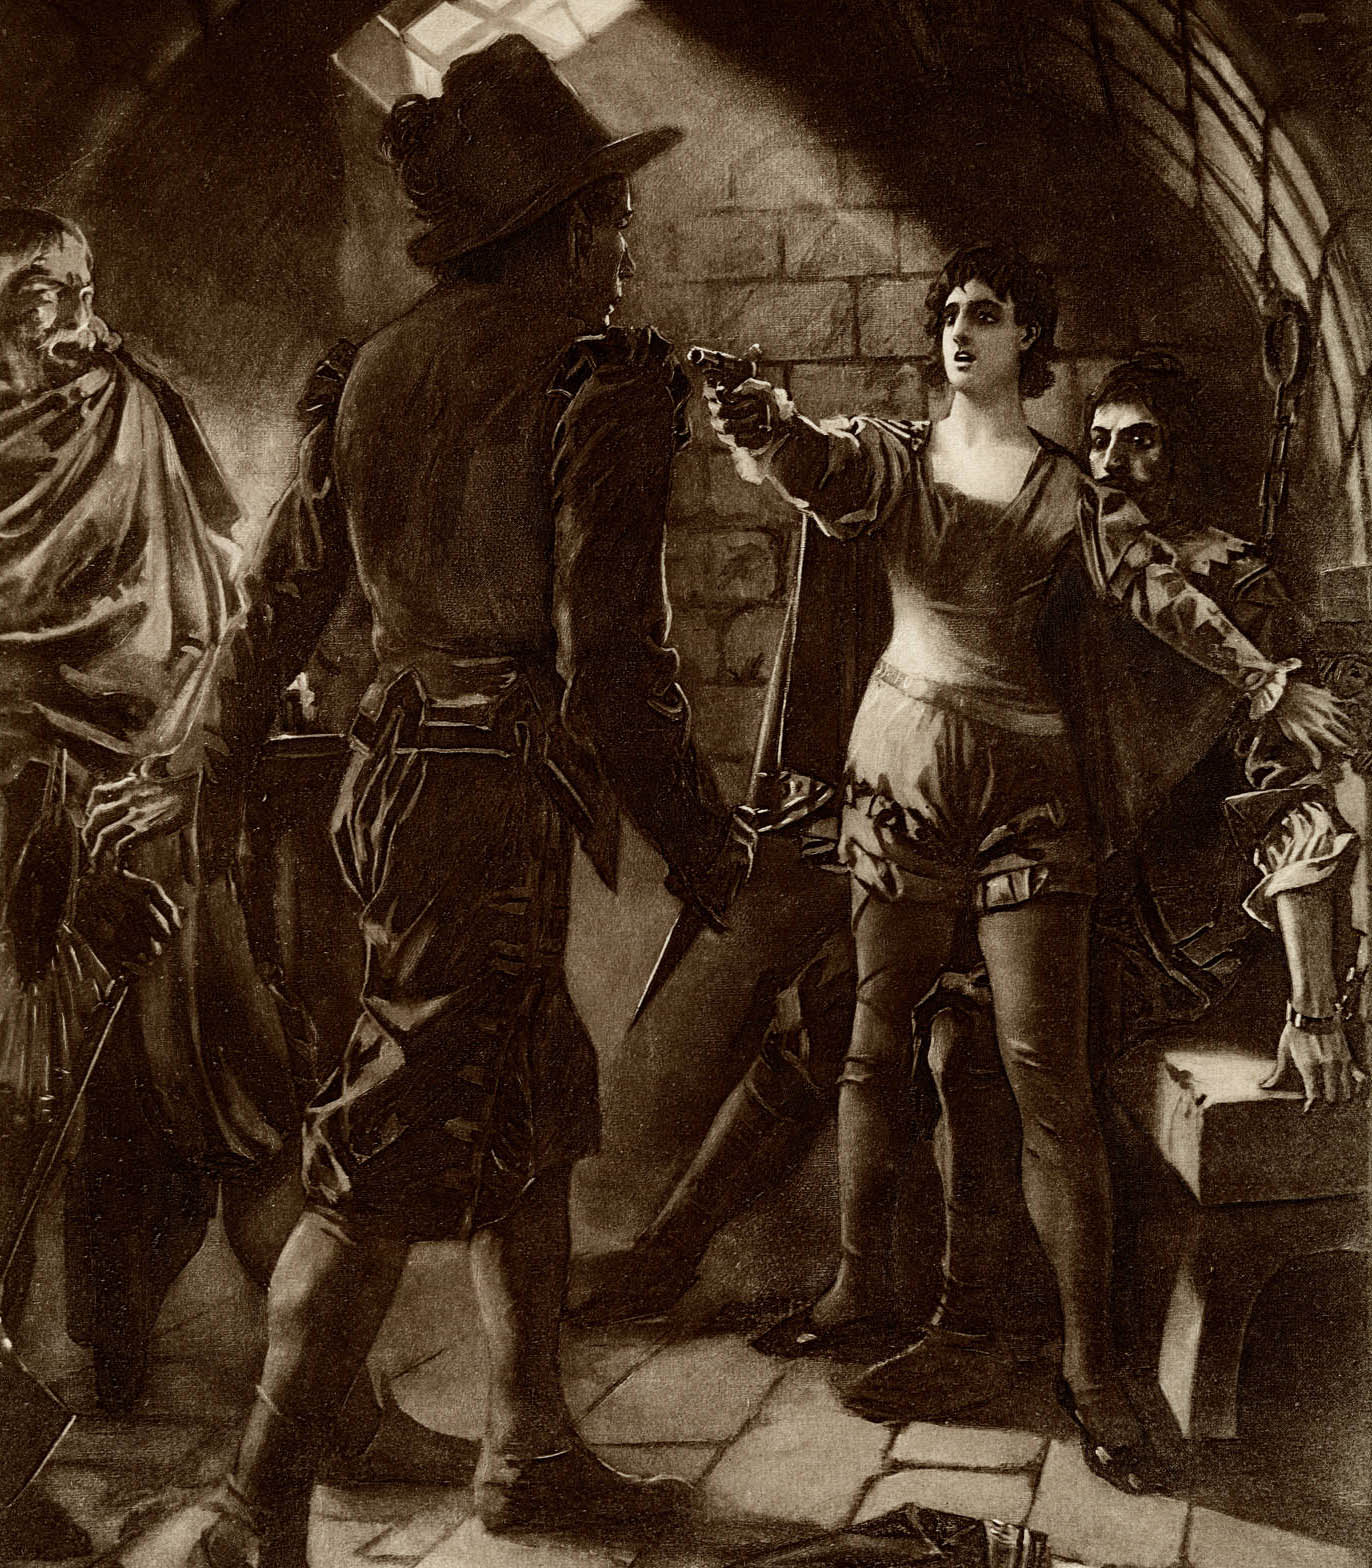 Don Pizarro, with his knife drawn, is approaching Florestan. Leonora, illuminated by light shining through the cell window, is shielding Florestan. She has drawn and aimed her pistol at Don Pizarro. Both Leonora and Florestan have their backs against the cell wall.